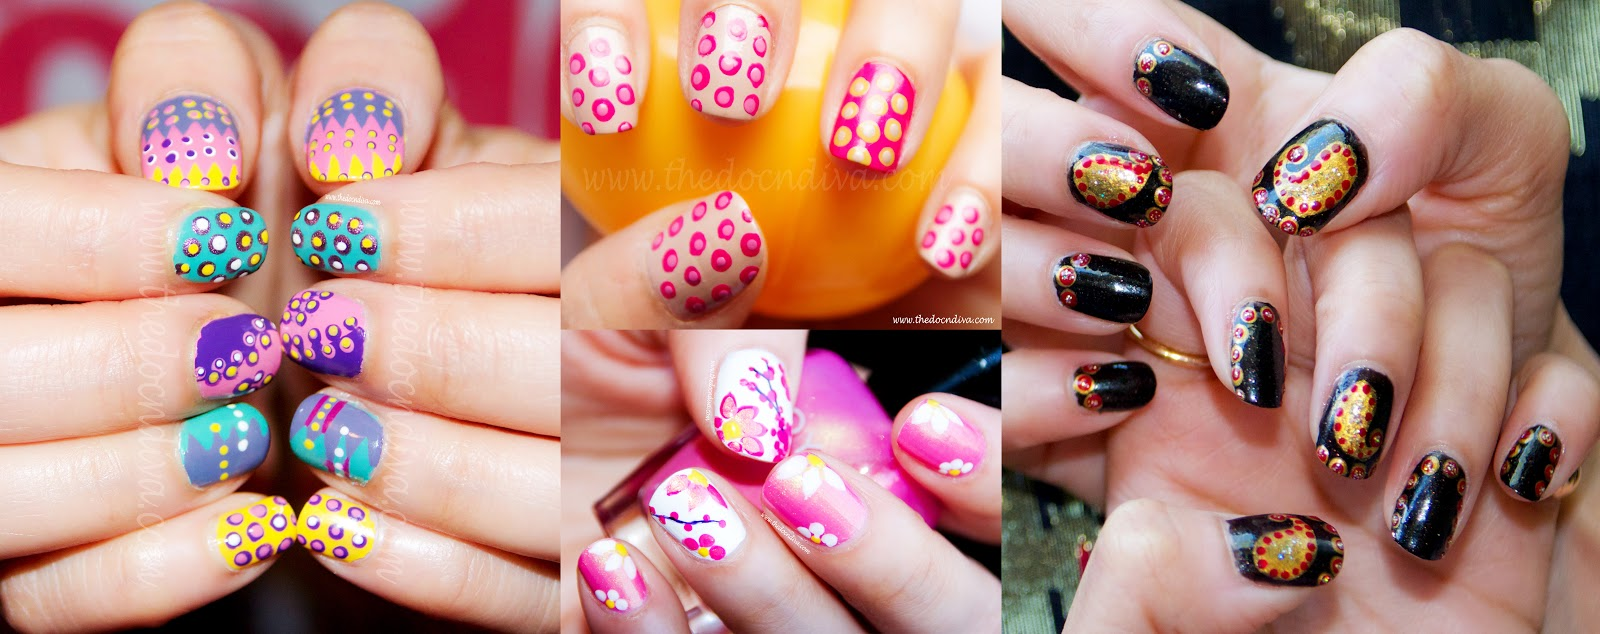 How to Stop Nail-biting: 5 steps to healthy nails |thedocndiva